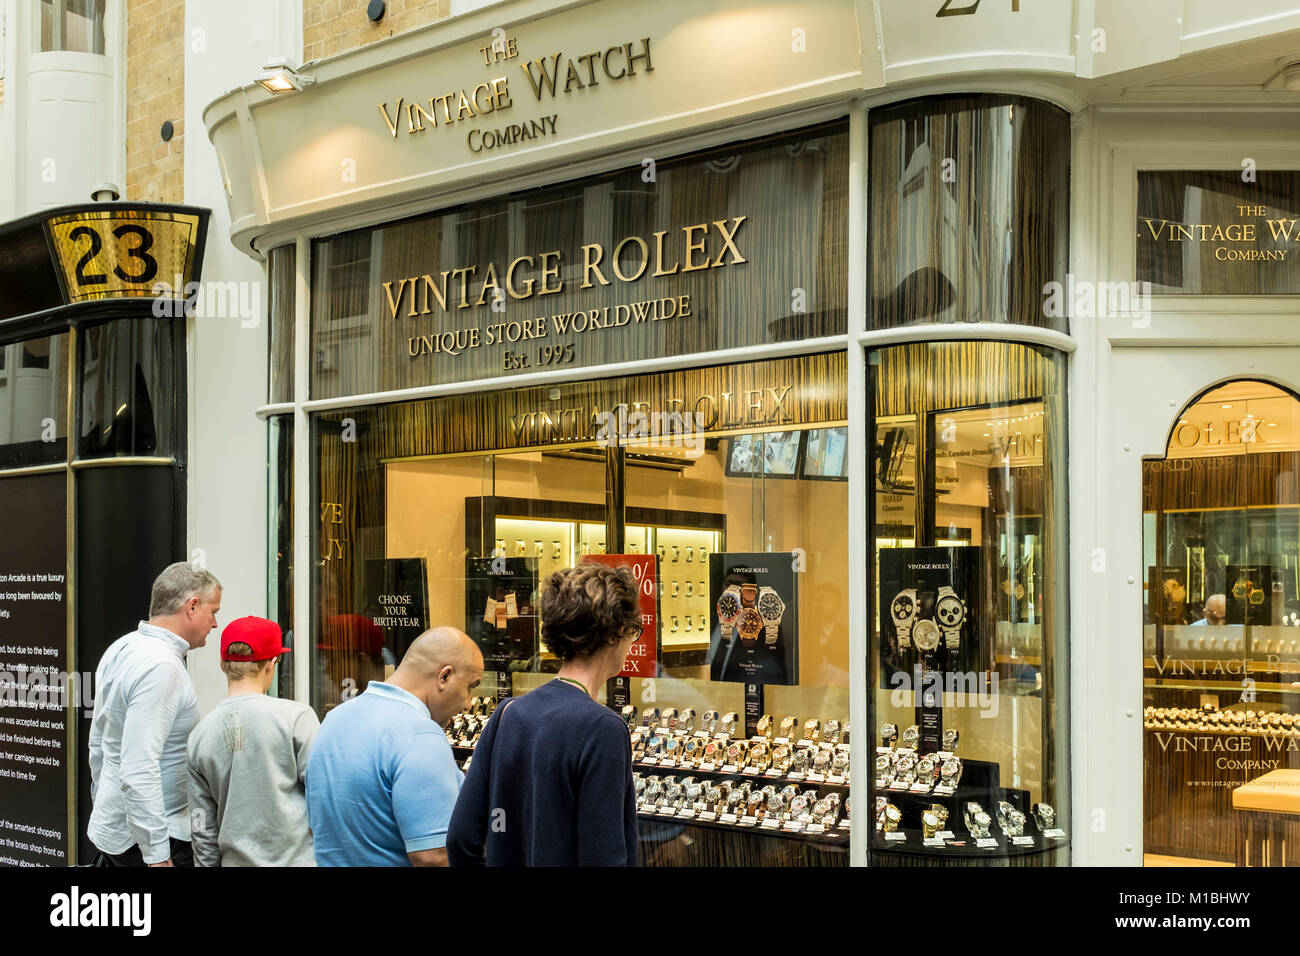 Peple looking at vintage watches through shop window of The Vintage Watch Company, Burlington Arcade, London, UK - Stock Image